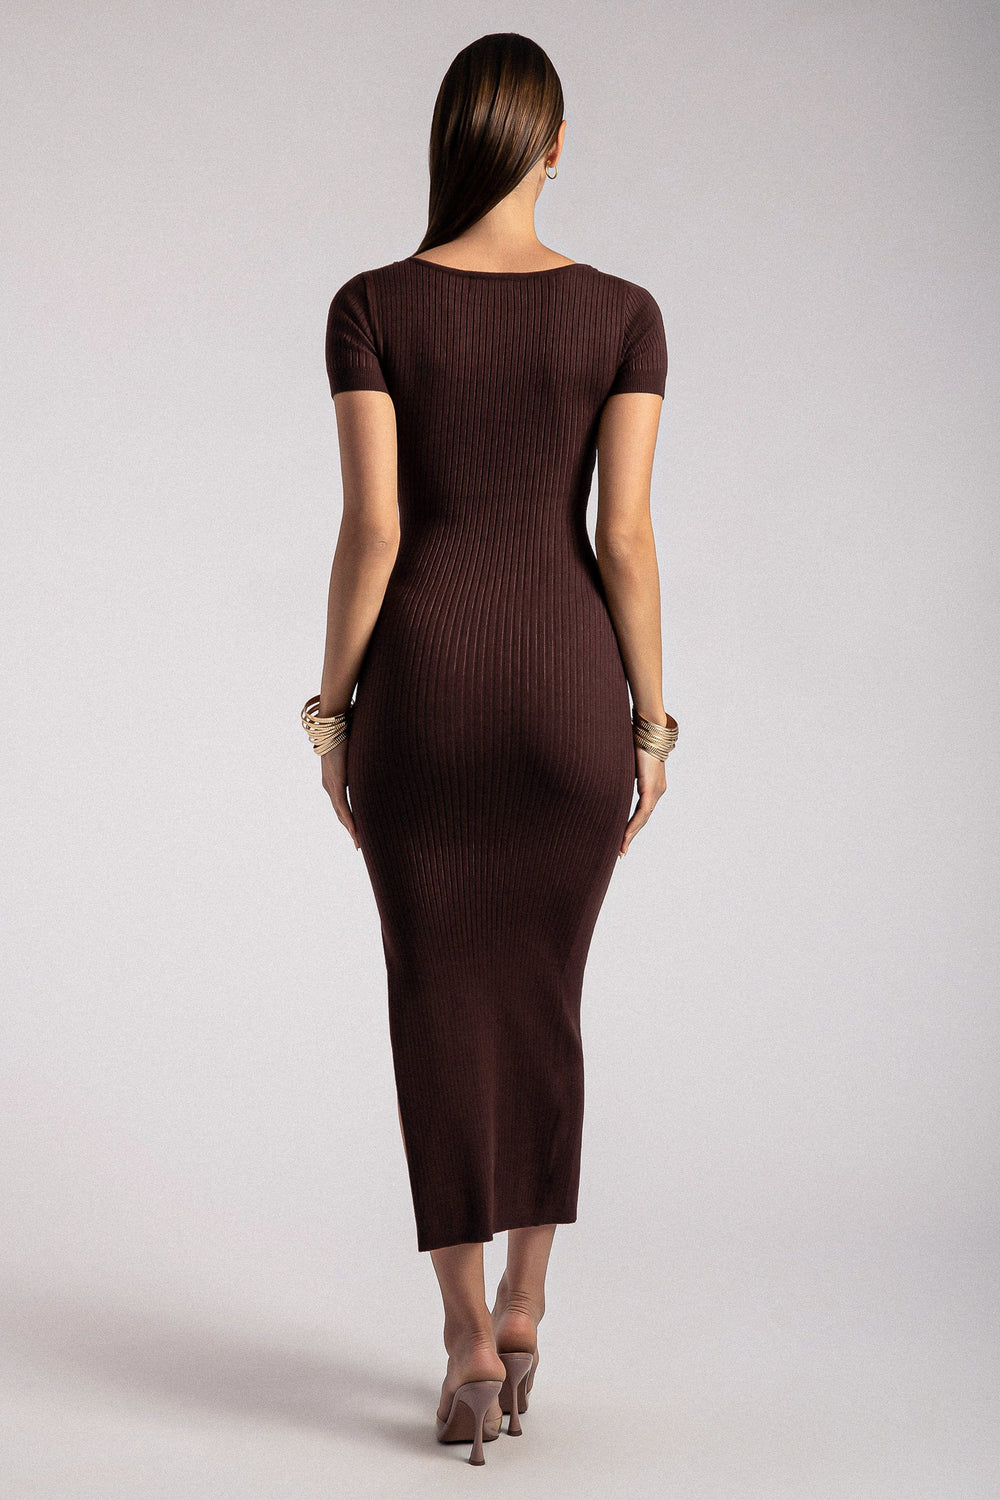 Nina Short Sleeve Midi Dress - Chocolate